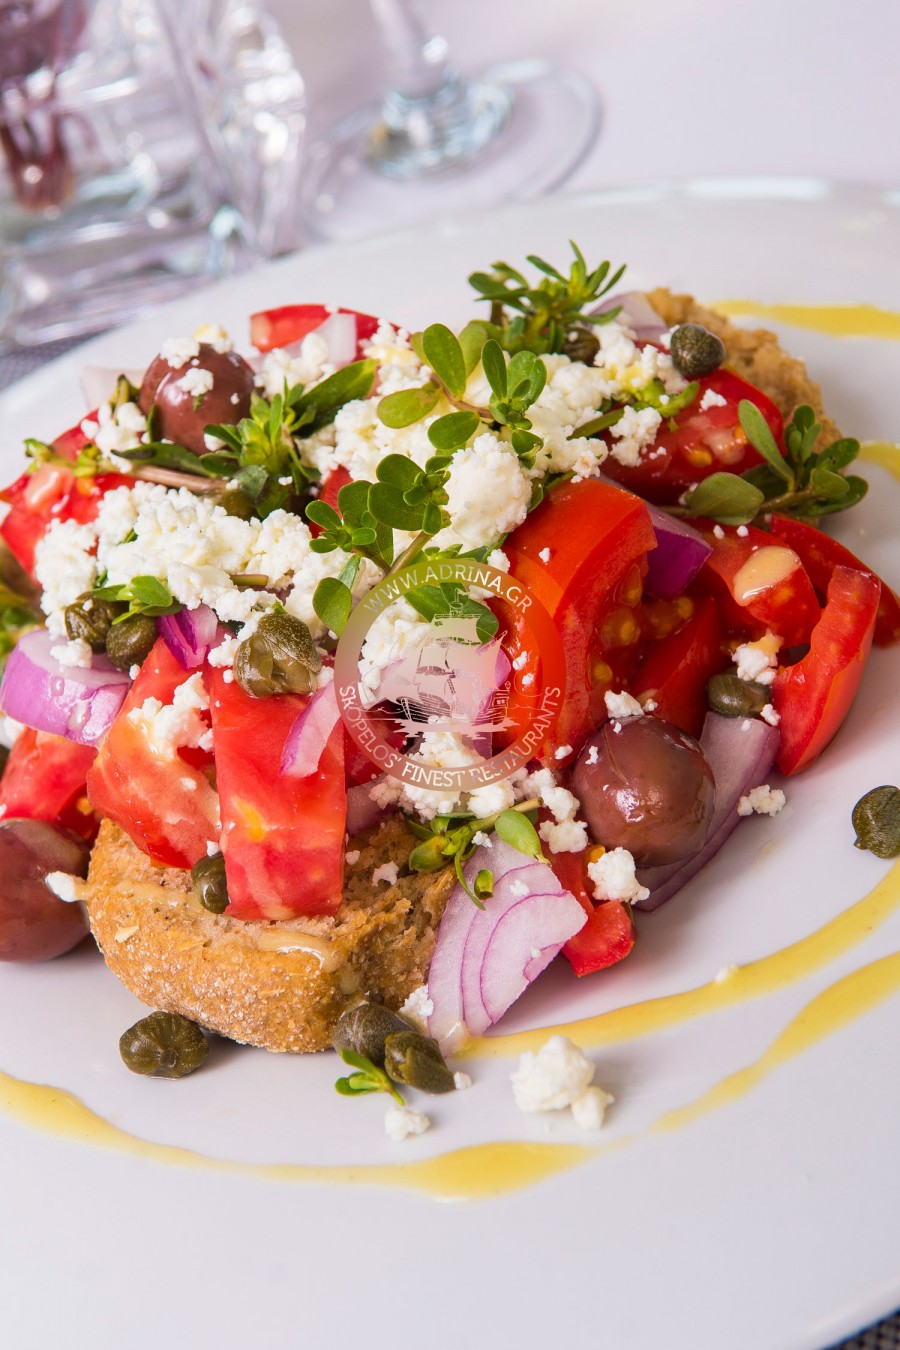 Salad with feta and dakos